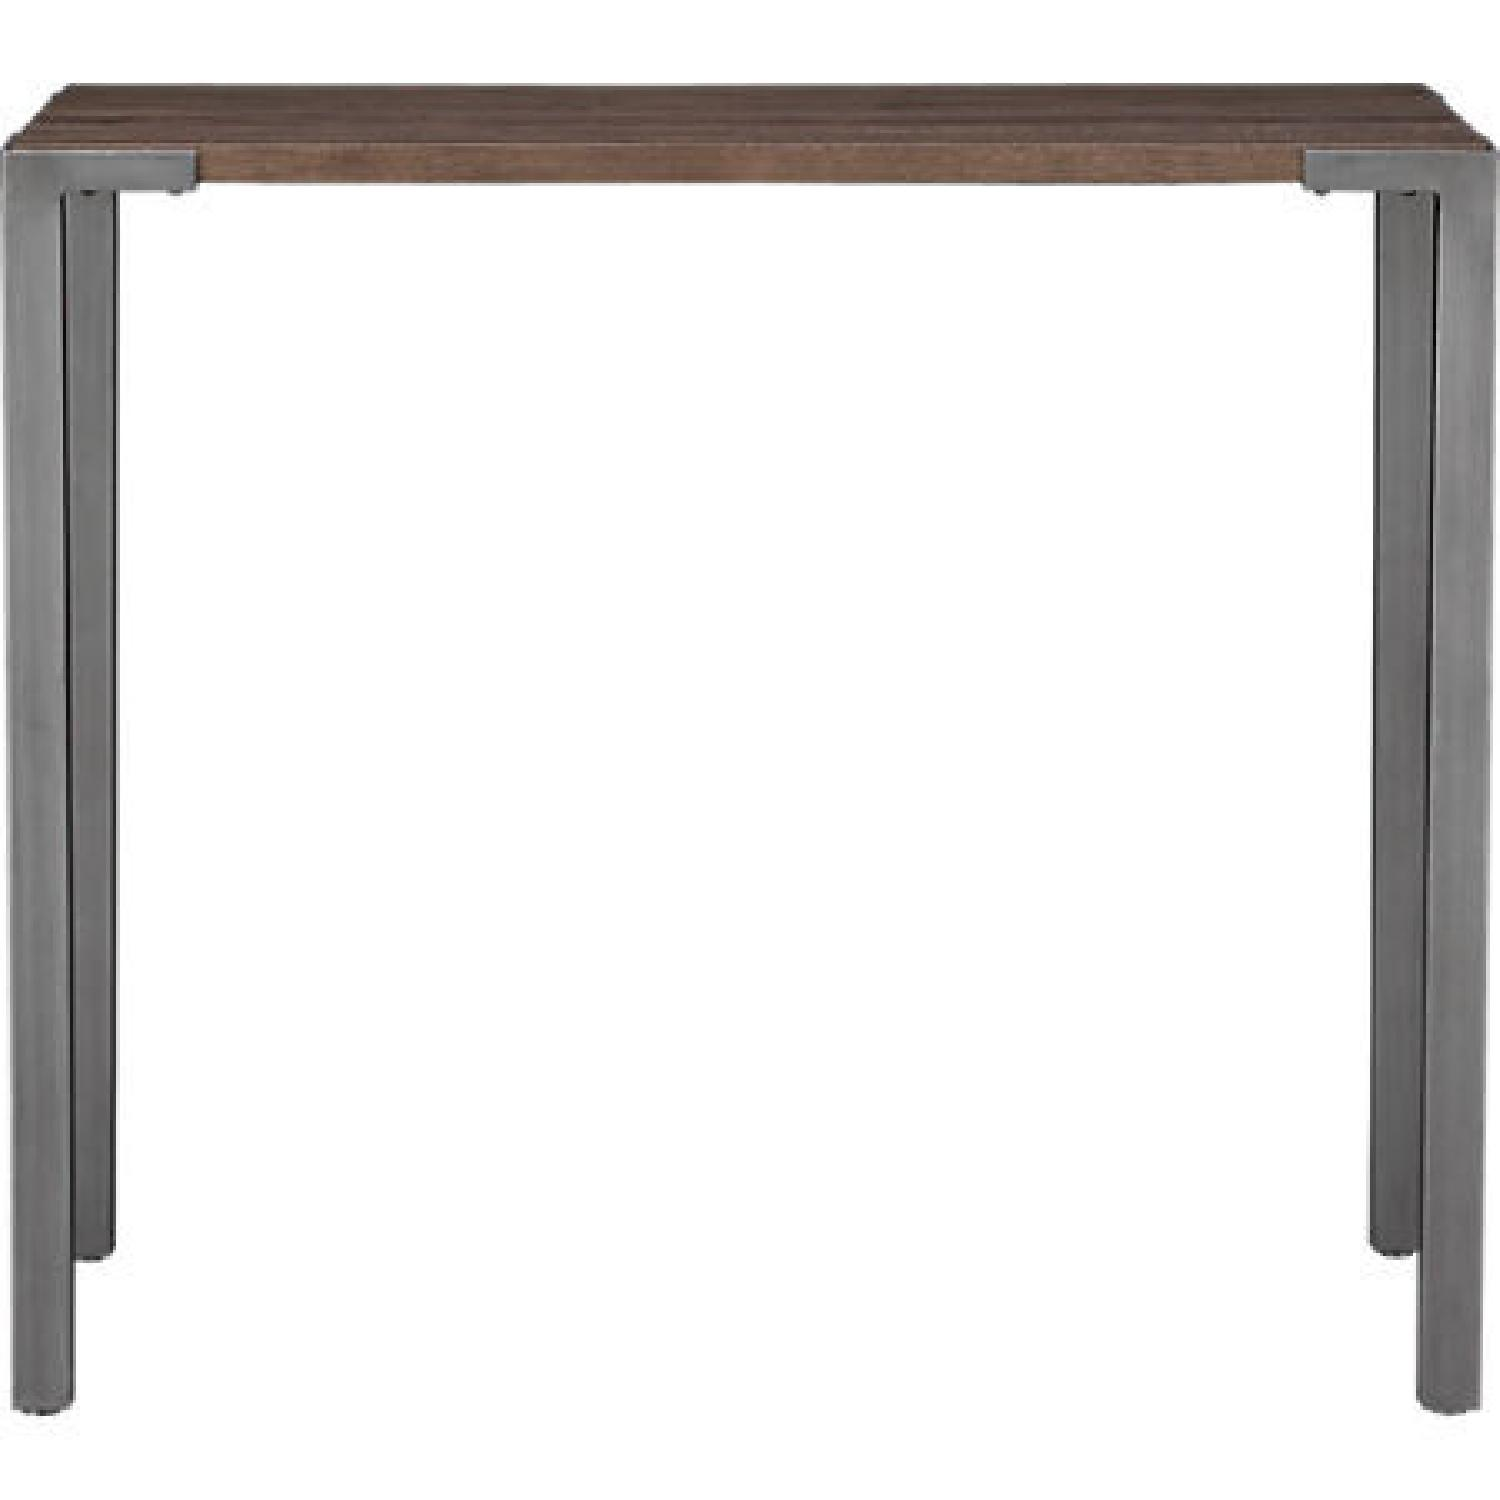 CB2 Mango Wood Table